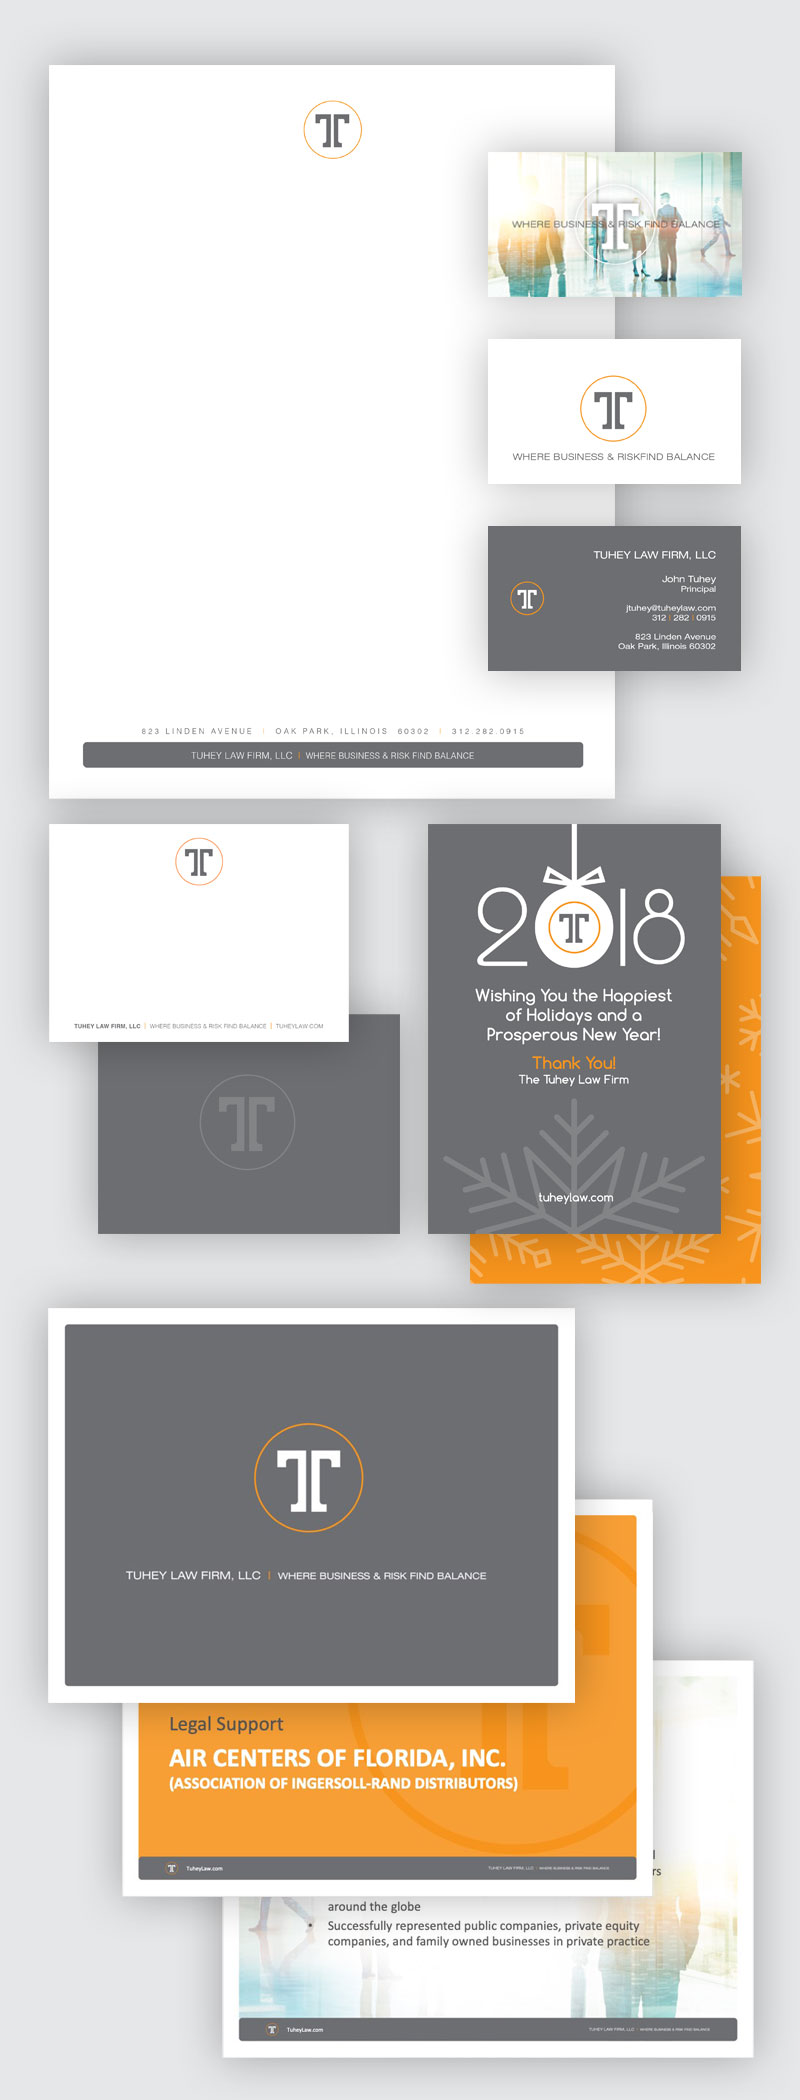 The Tuhey Law Firm, LLC Branding